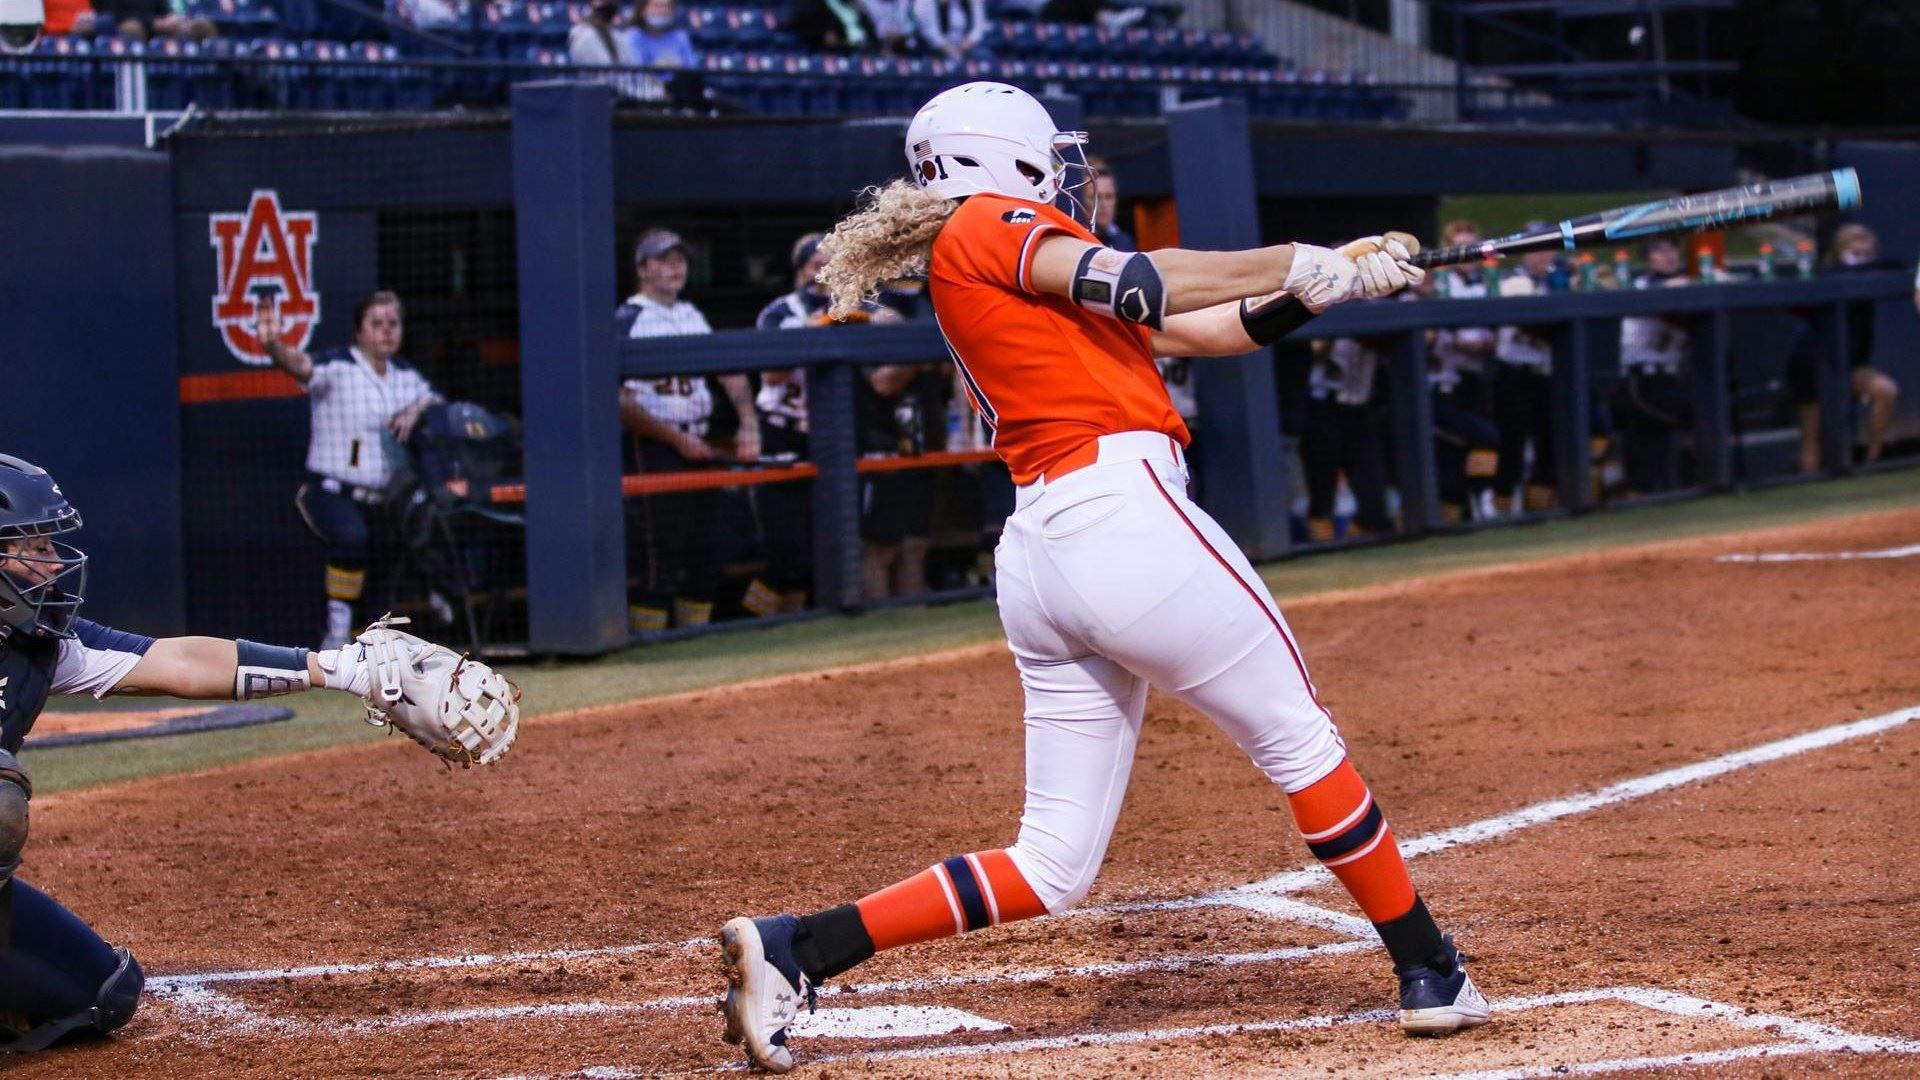 Tigers end three-game losing streak with win vs. Aggies